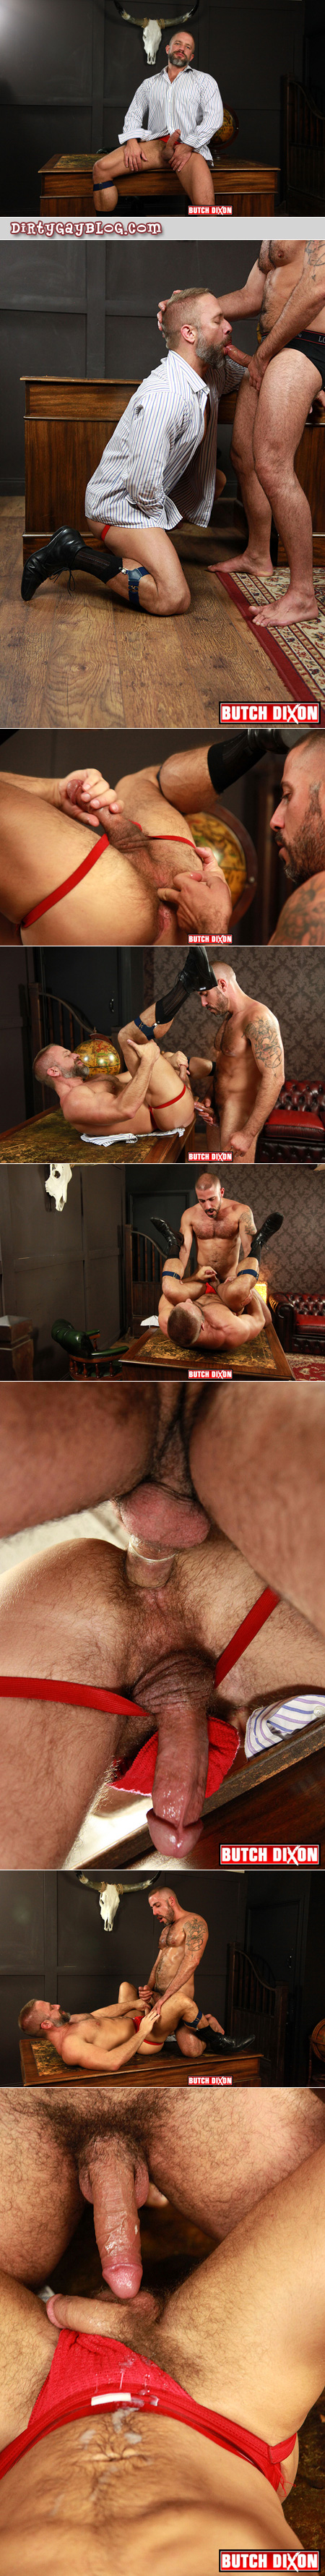 Hairy muscle Daddy fucking a rich mature man on the desk in his den while he still wears his socks and garters and a red jockstrap.